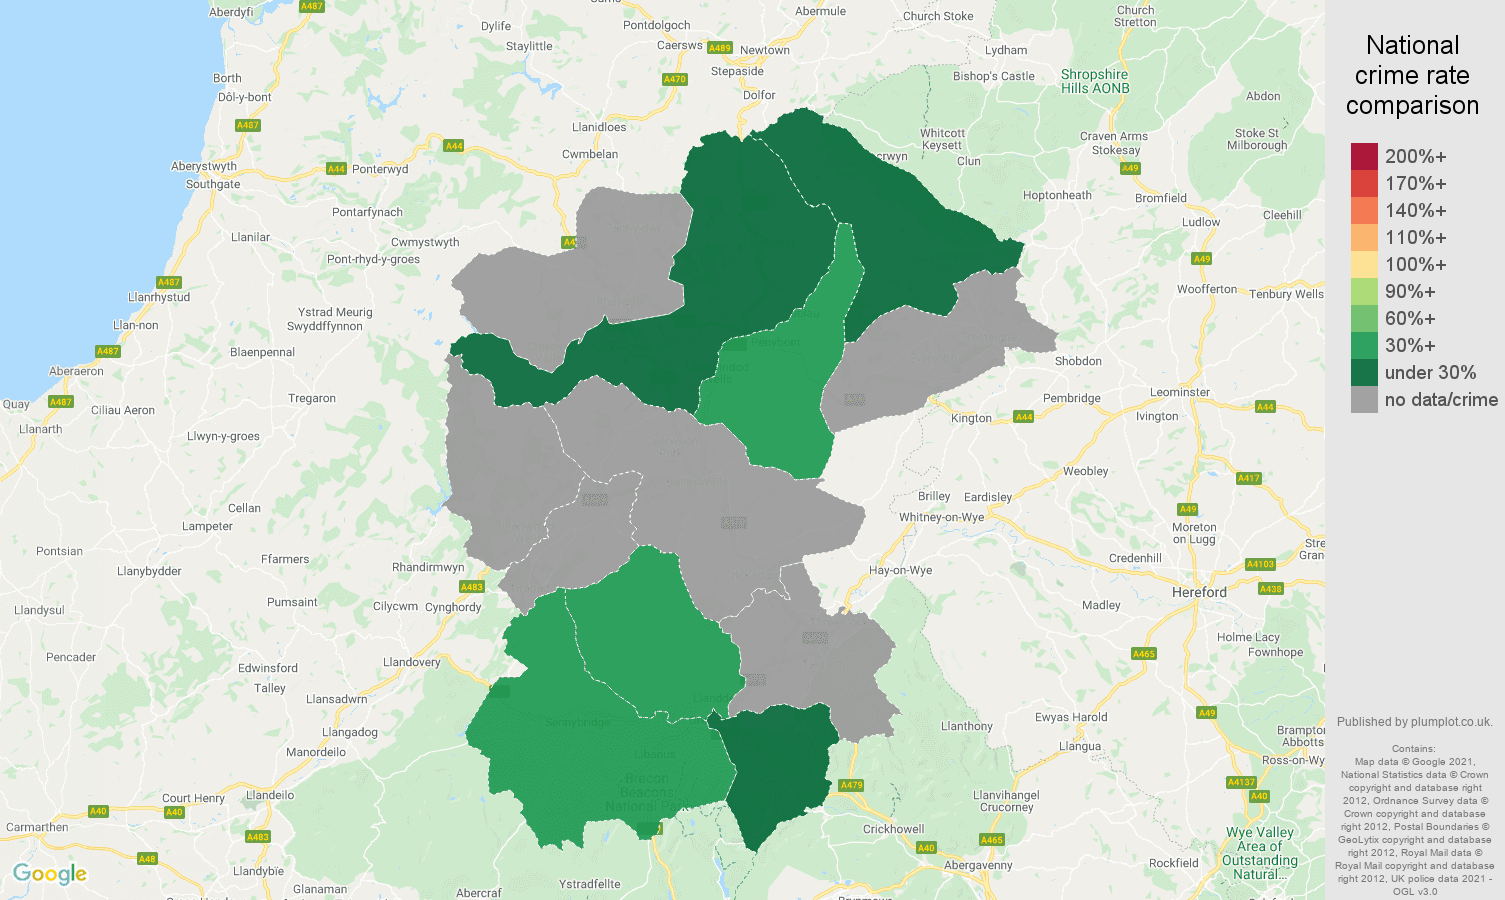 Llandrindod Wells bicycle theft crime rate comparison map